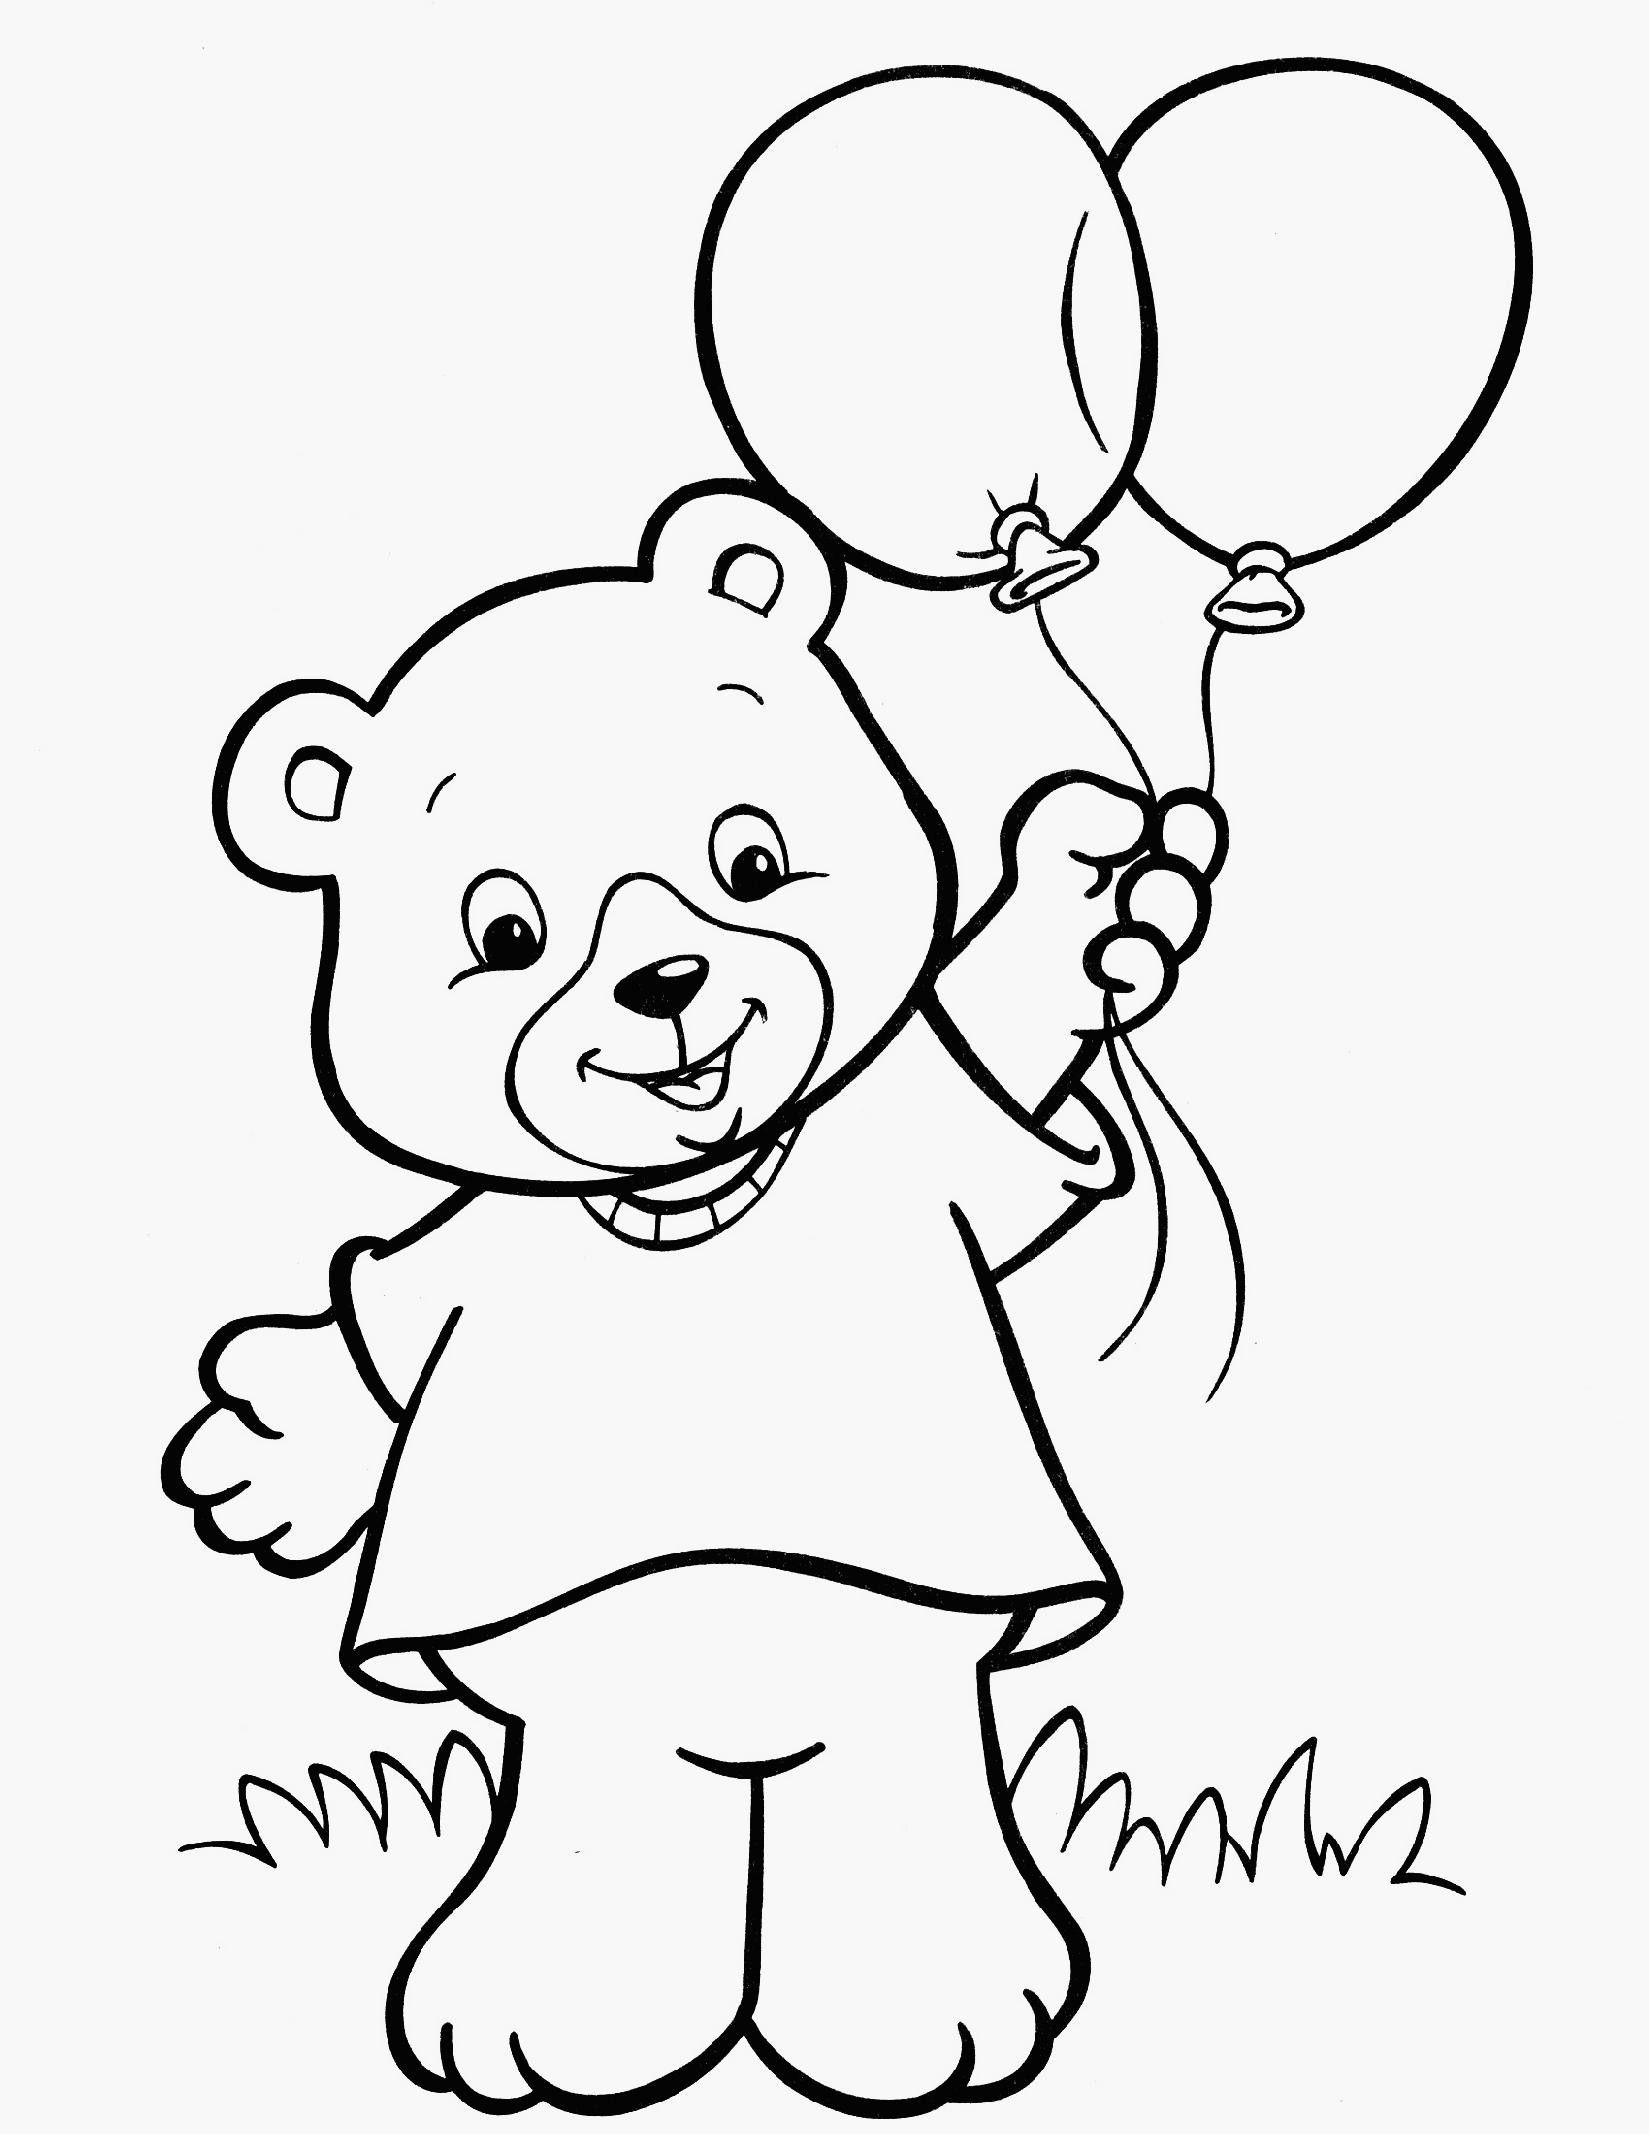 Free Coloring Pages For 2 Year Olds : Free Coloring Pages For 3 Year Olds Coloring Home